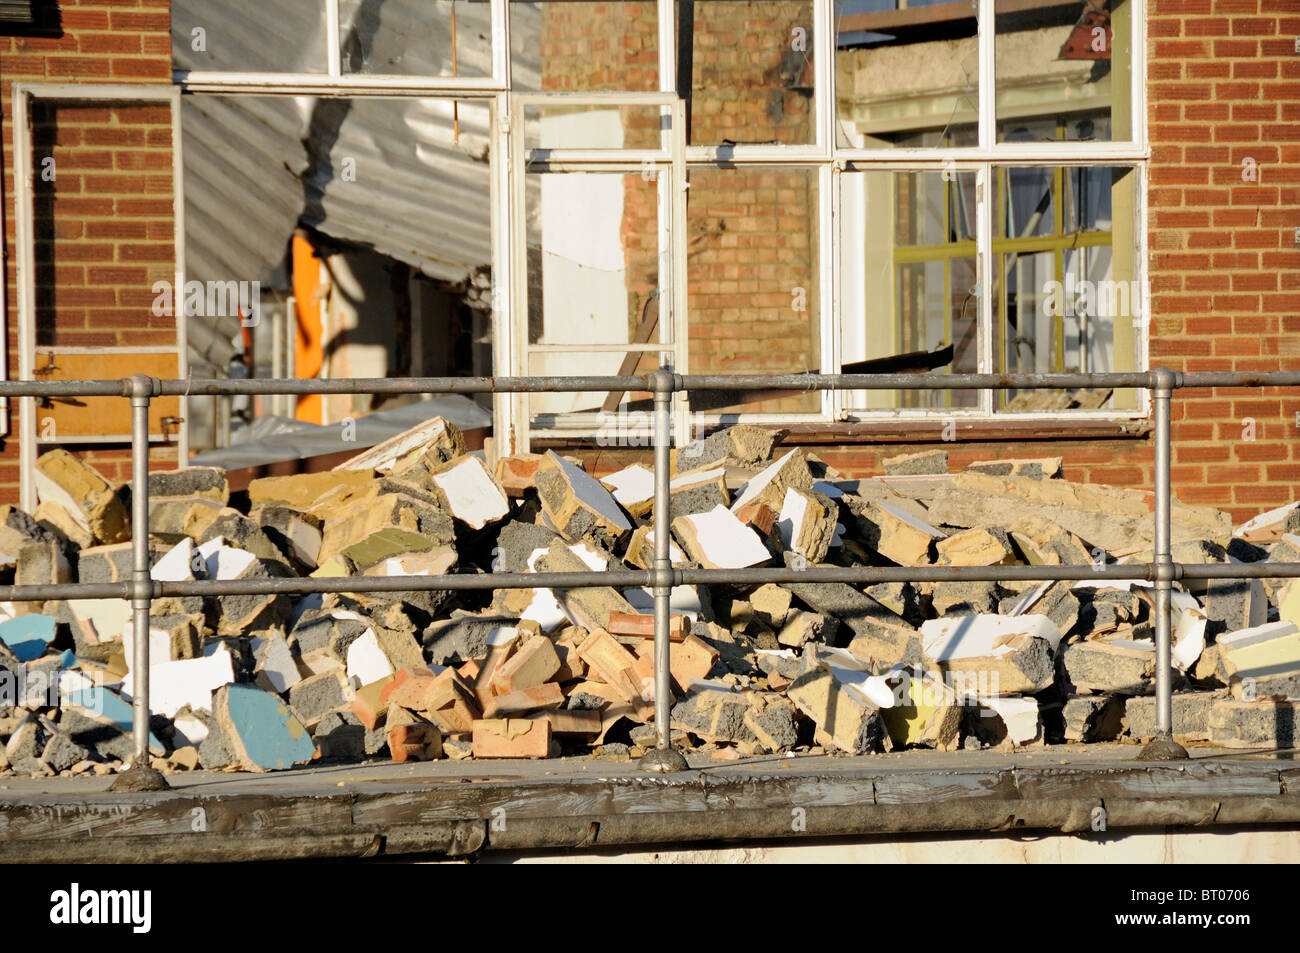 Brick rubble in front of building being demolished - Stock Image